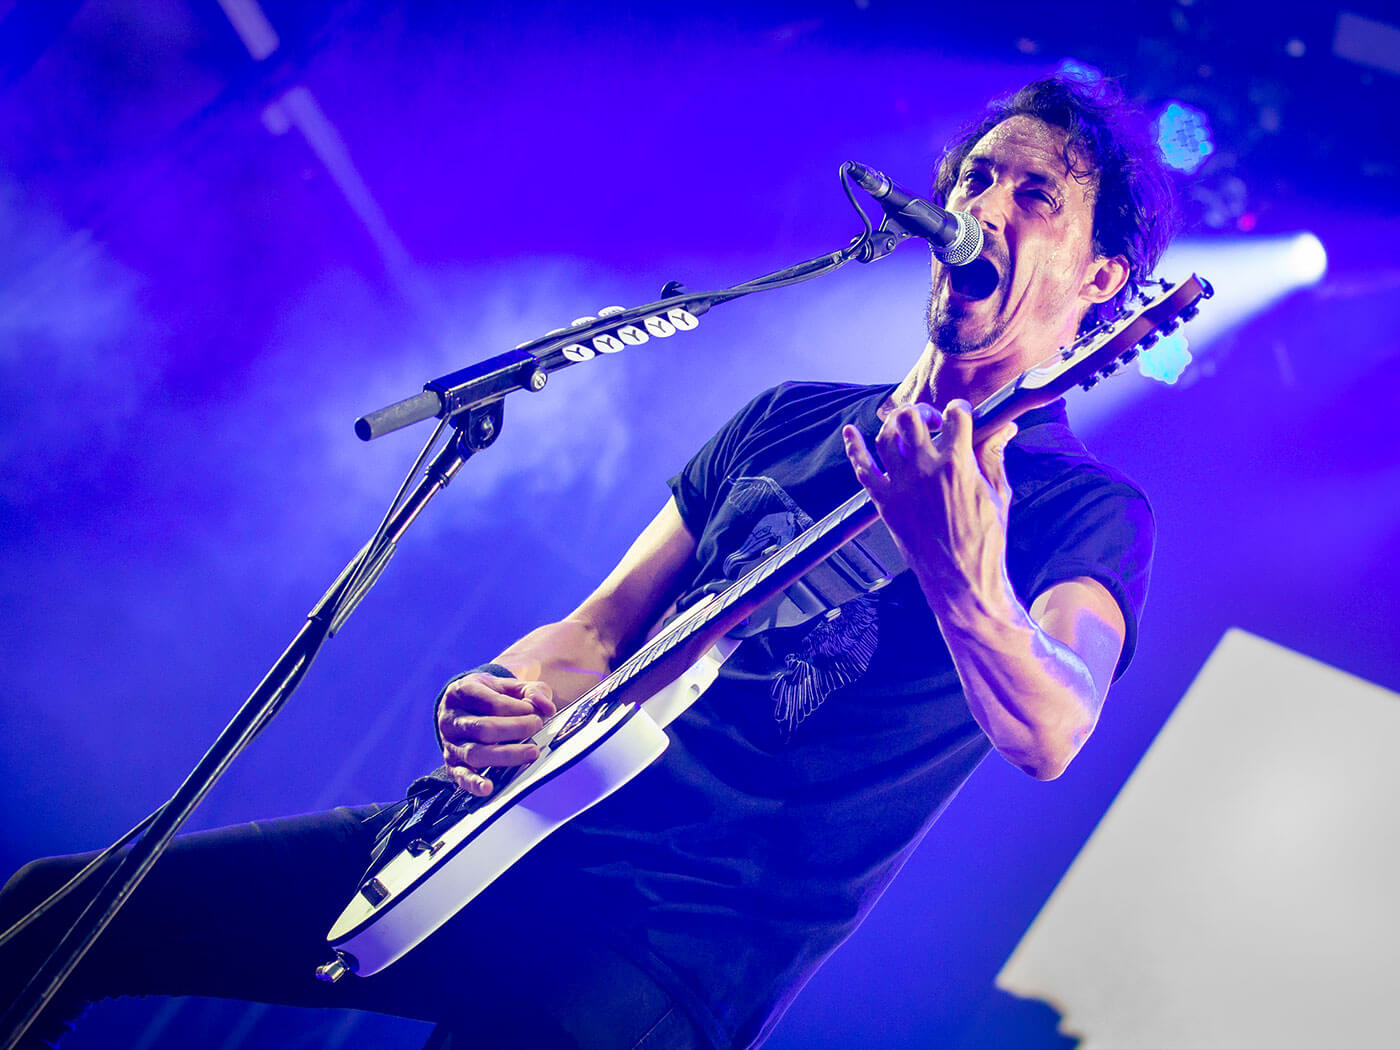 Gojira release Another World, their first new music in four years ...